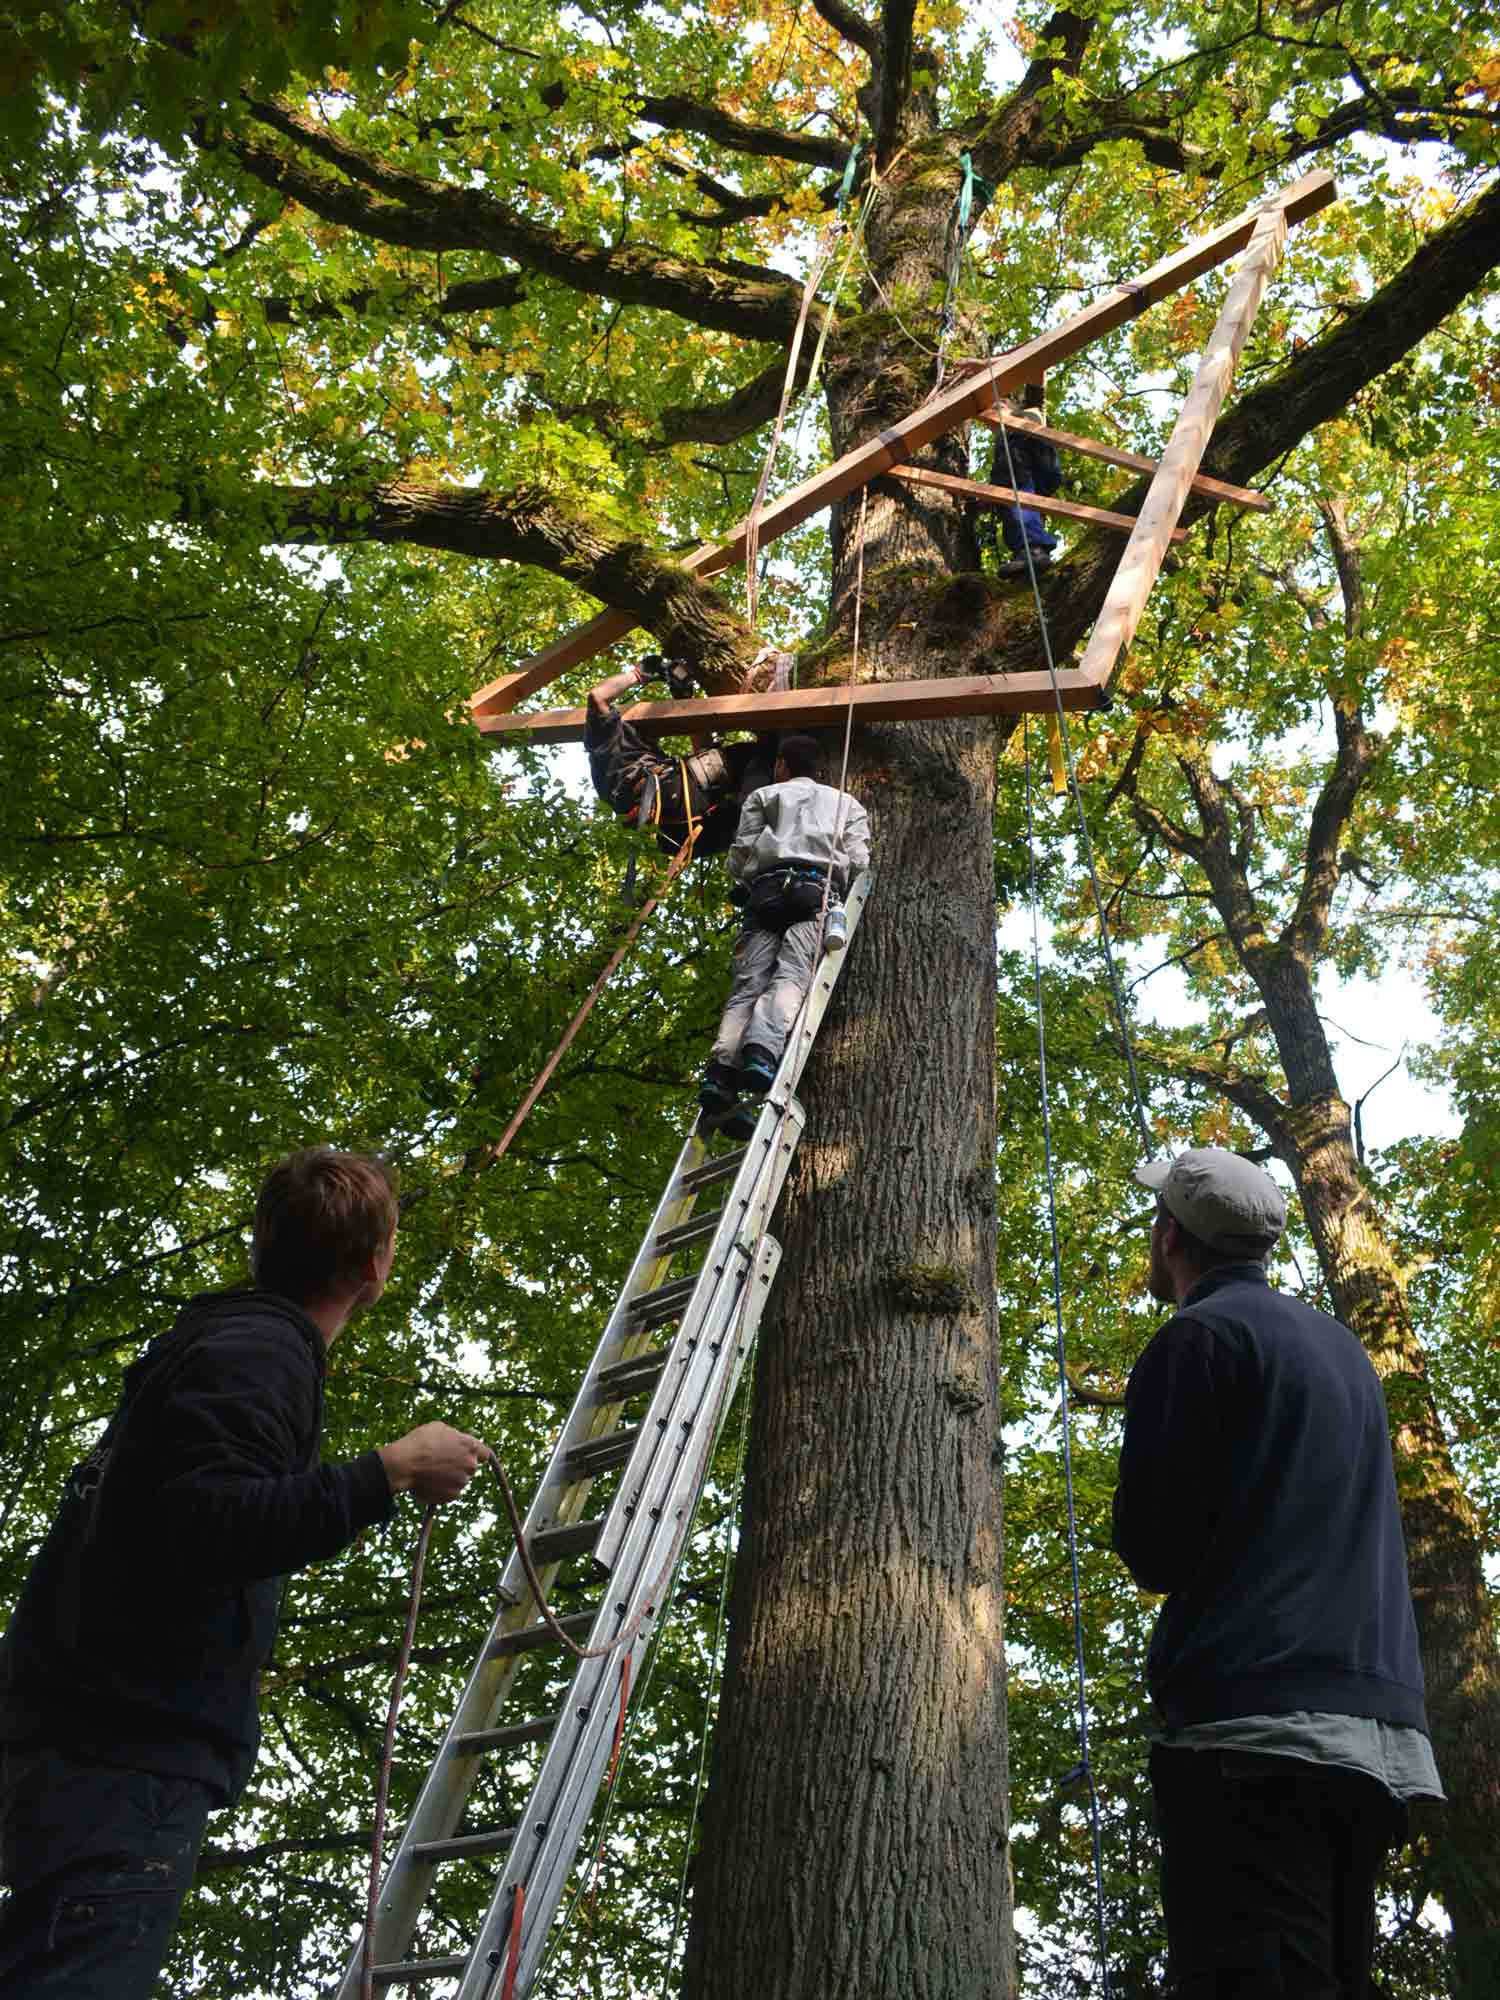 mounting-a-treehouse-platform-construction-with-pulley-baumbaron